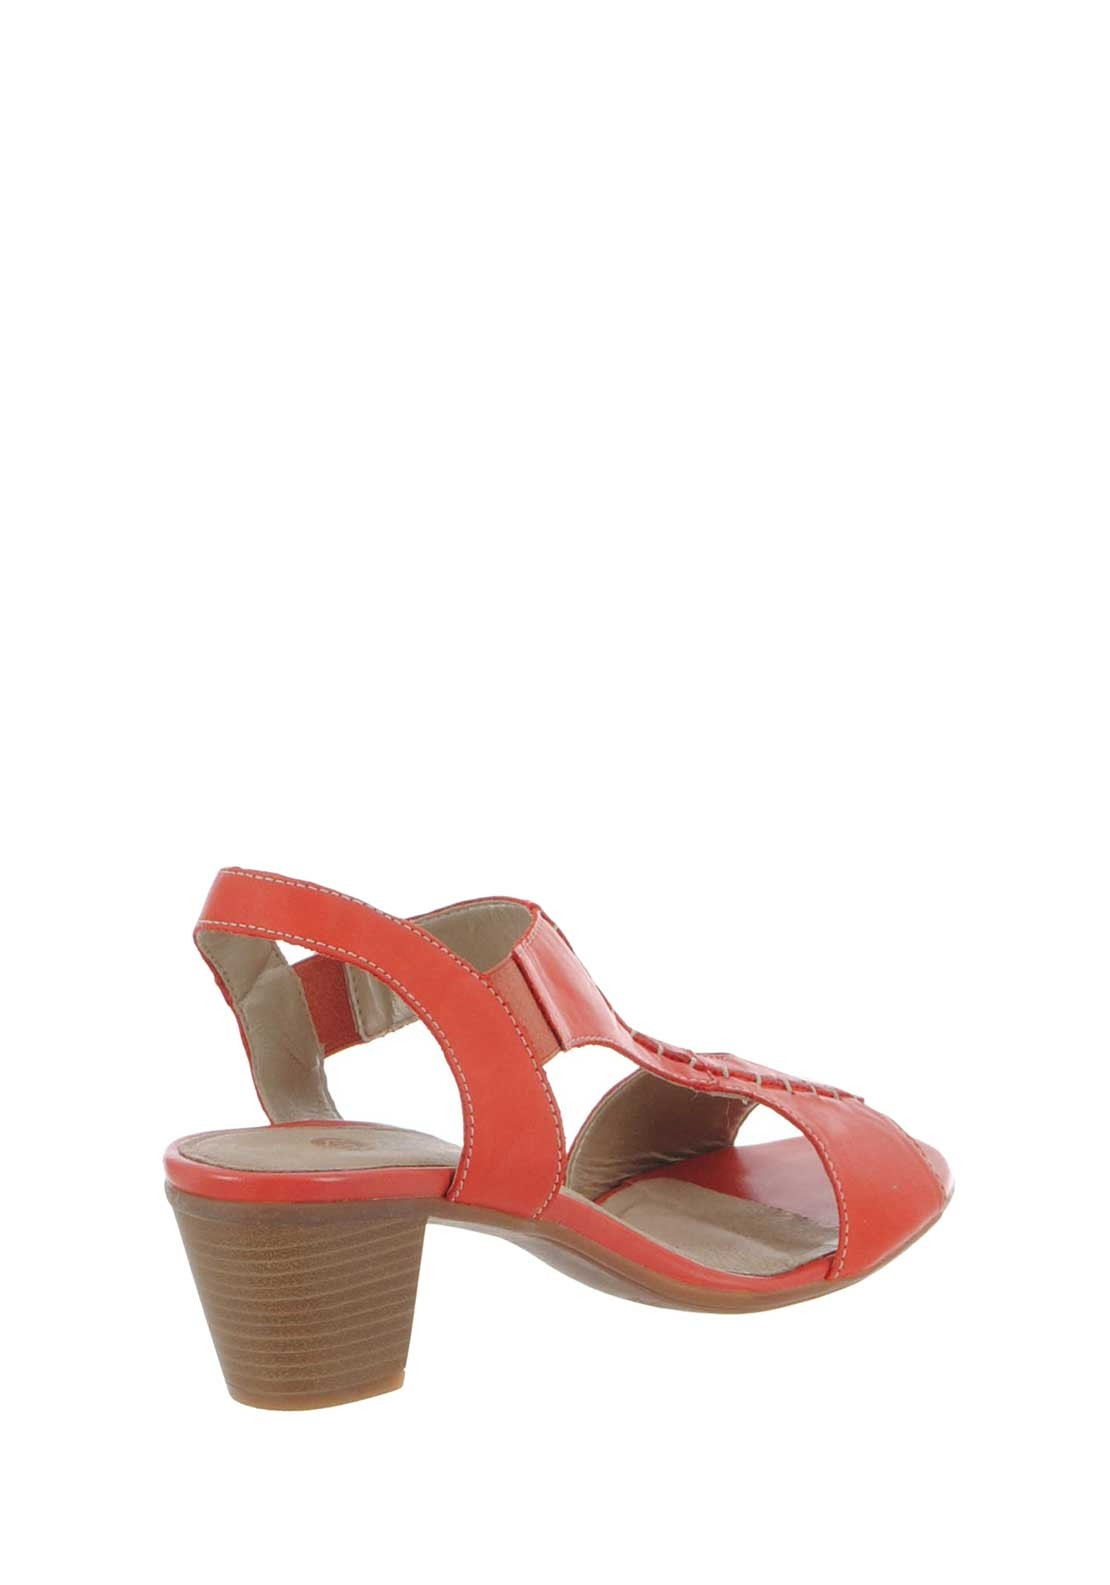 331b2ba980a9 Remonte Womens Leather Block Heel Sandals